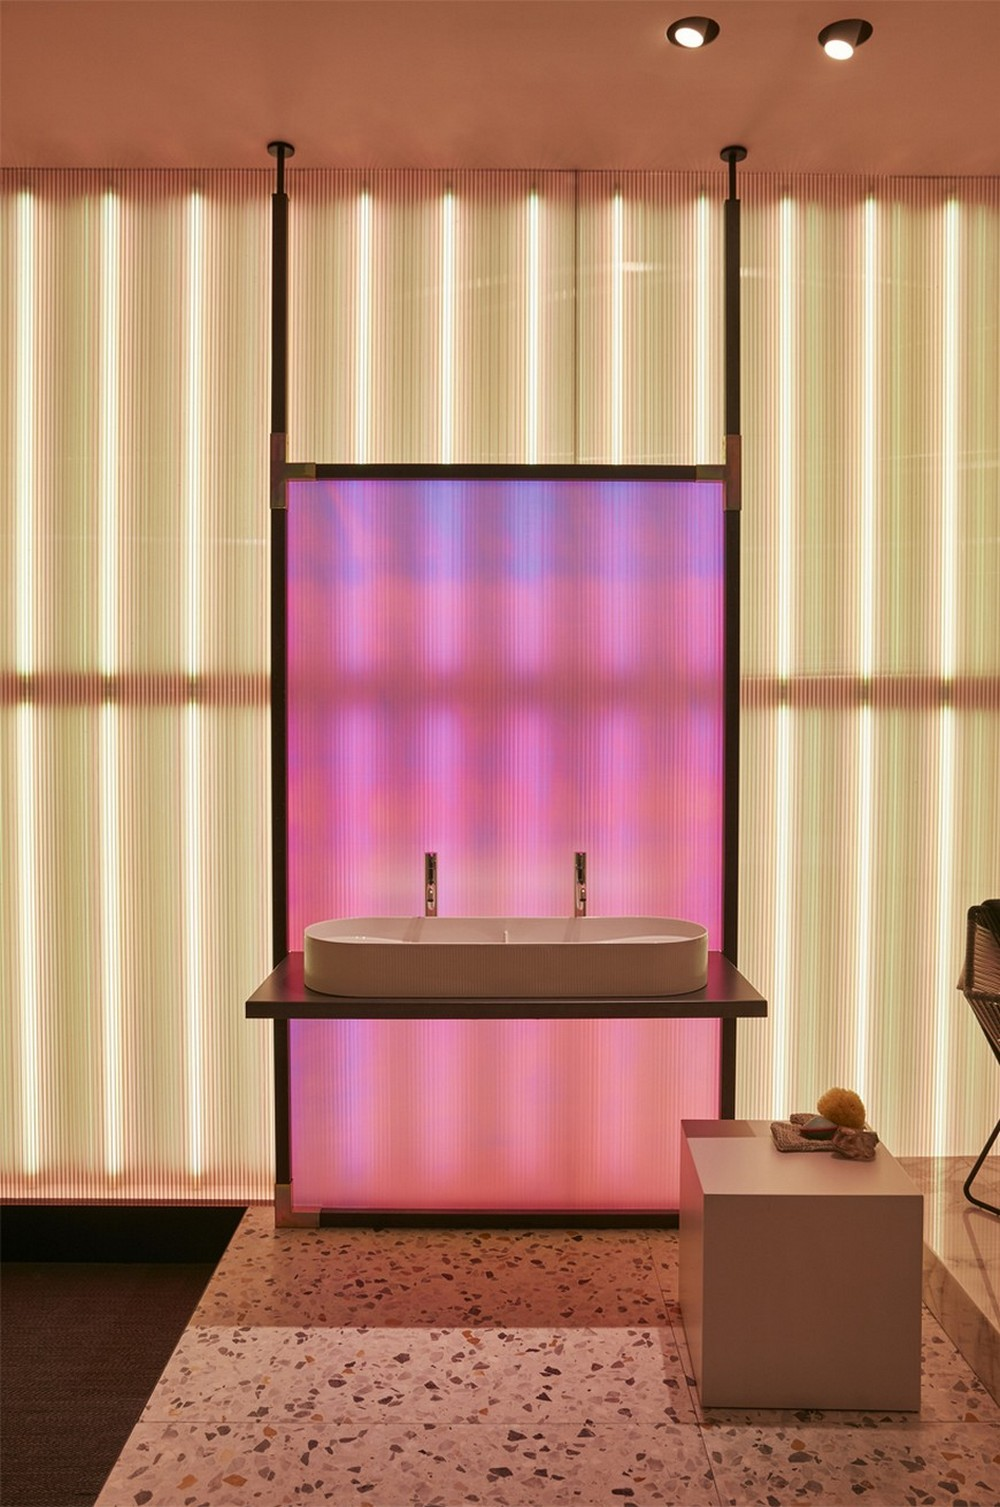 3 Luxury Bathrooms Brands That You Can Visit At ICFF 2019 luxury bathrooms brands 3 Luxury Bathrooms Brands That You Can Visit At ICFF 2019 3 Luxury Bathrooms Brands That You Can Visit At ICFF 2019 5